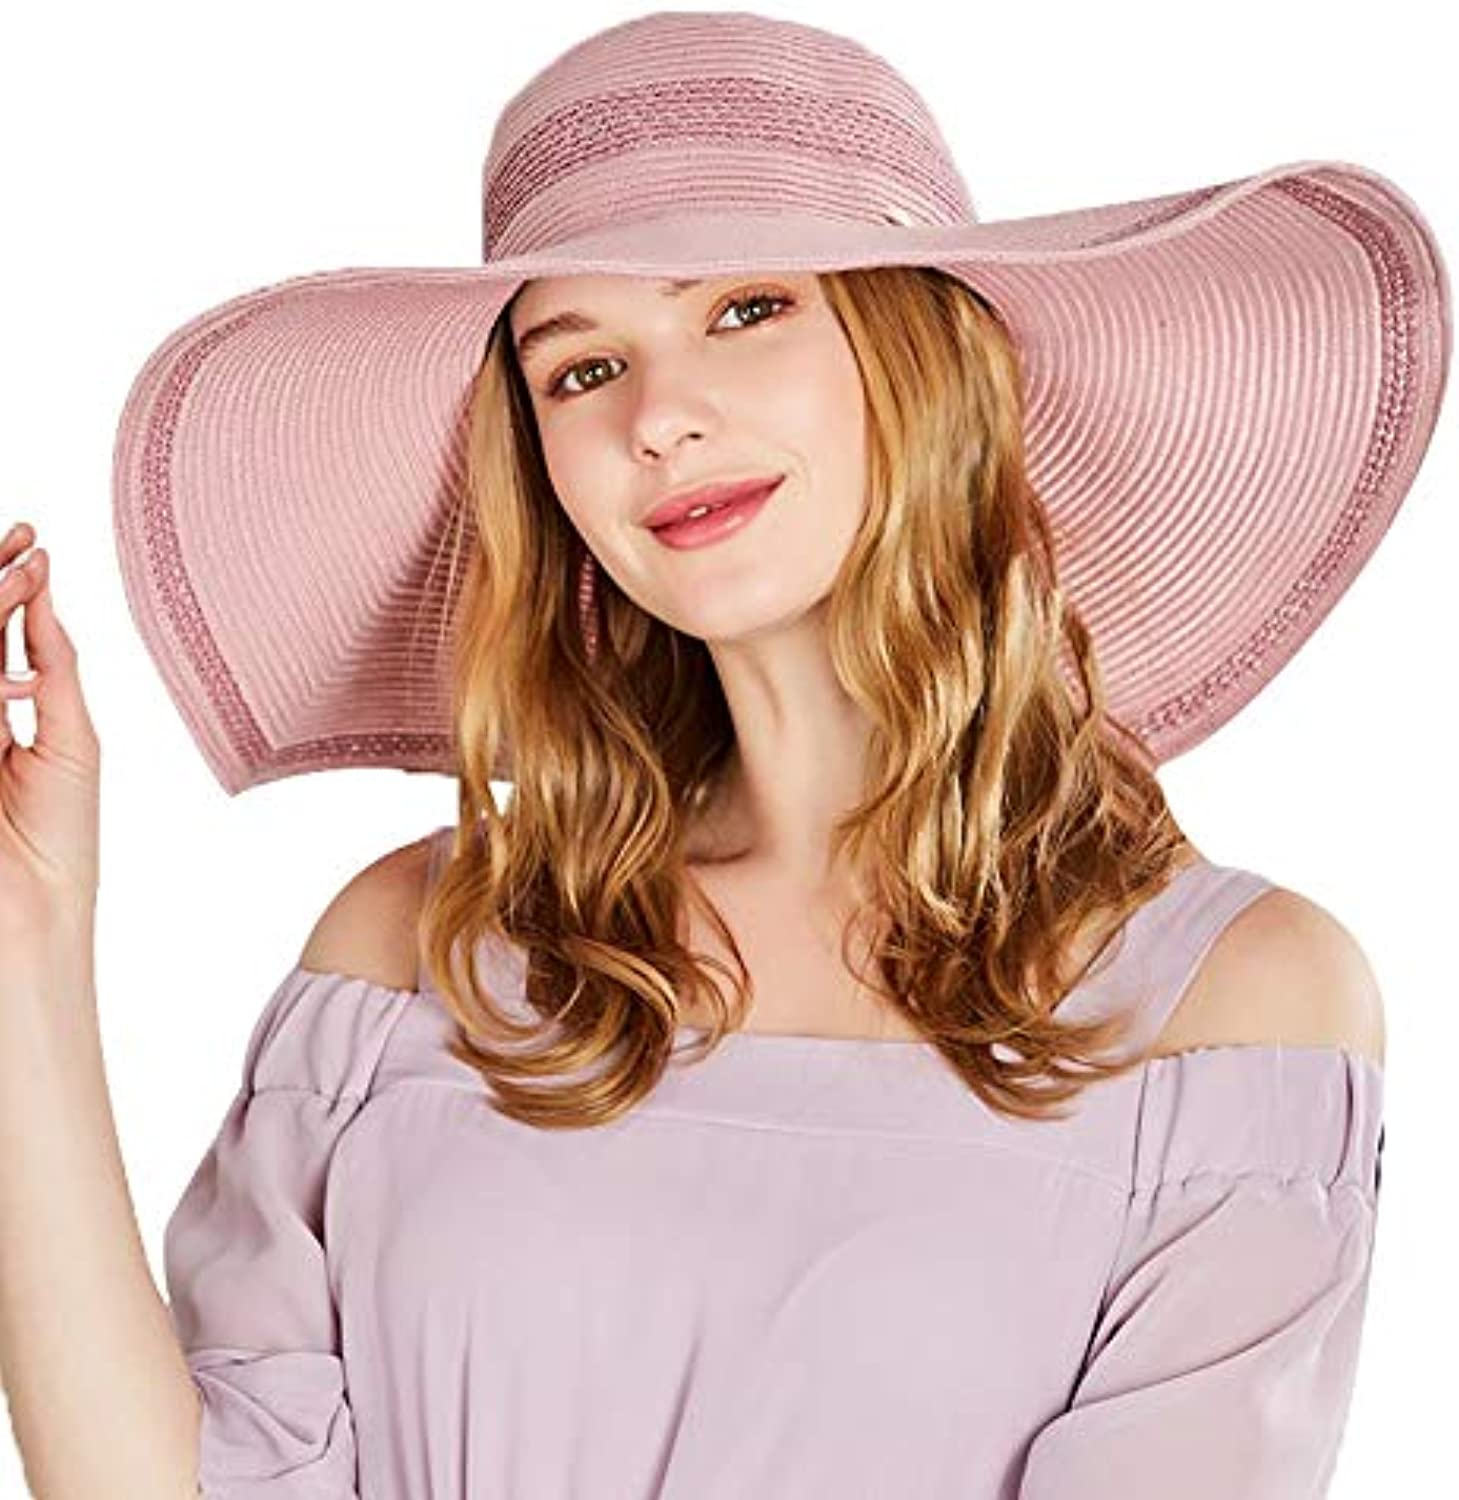 Beach Hat Visor Straw Hat Female Summer Small Fresh Korean Sunscreen Big Hat Bohemian Big Hat (color   Pink, Size   57.5cm)